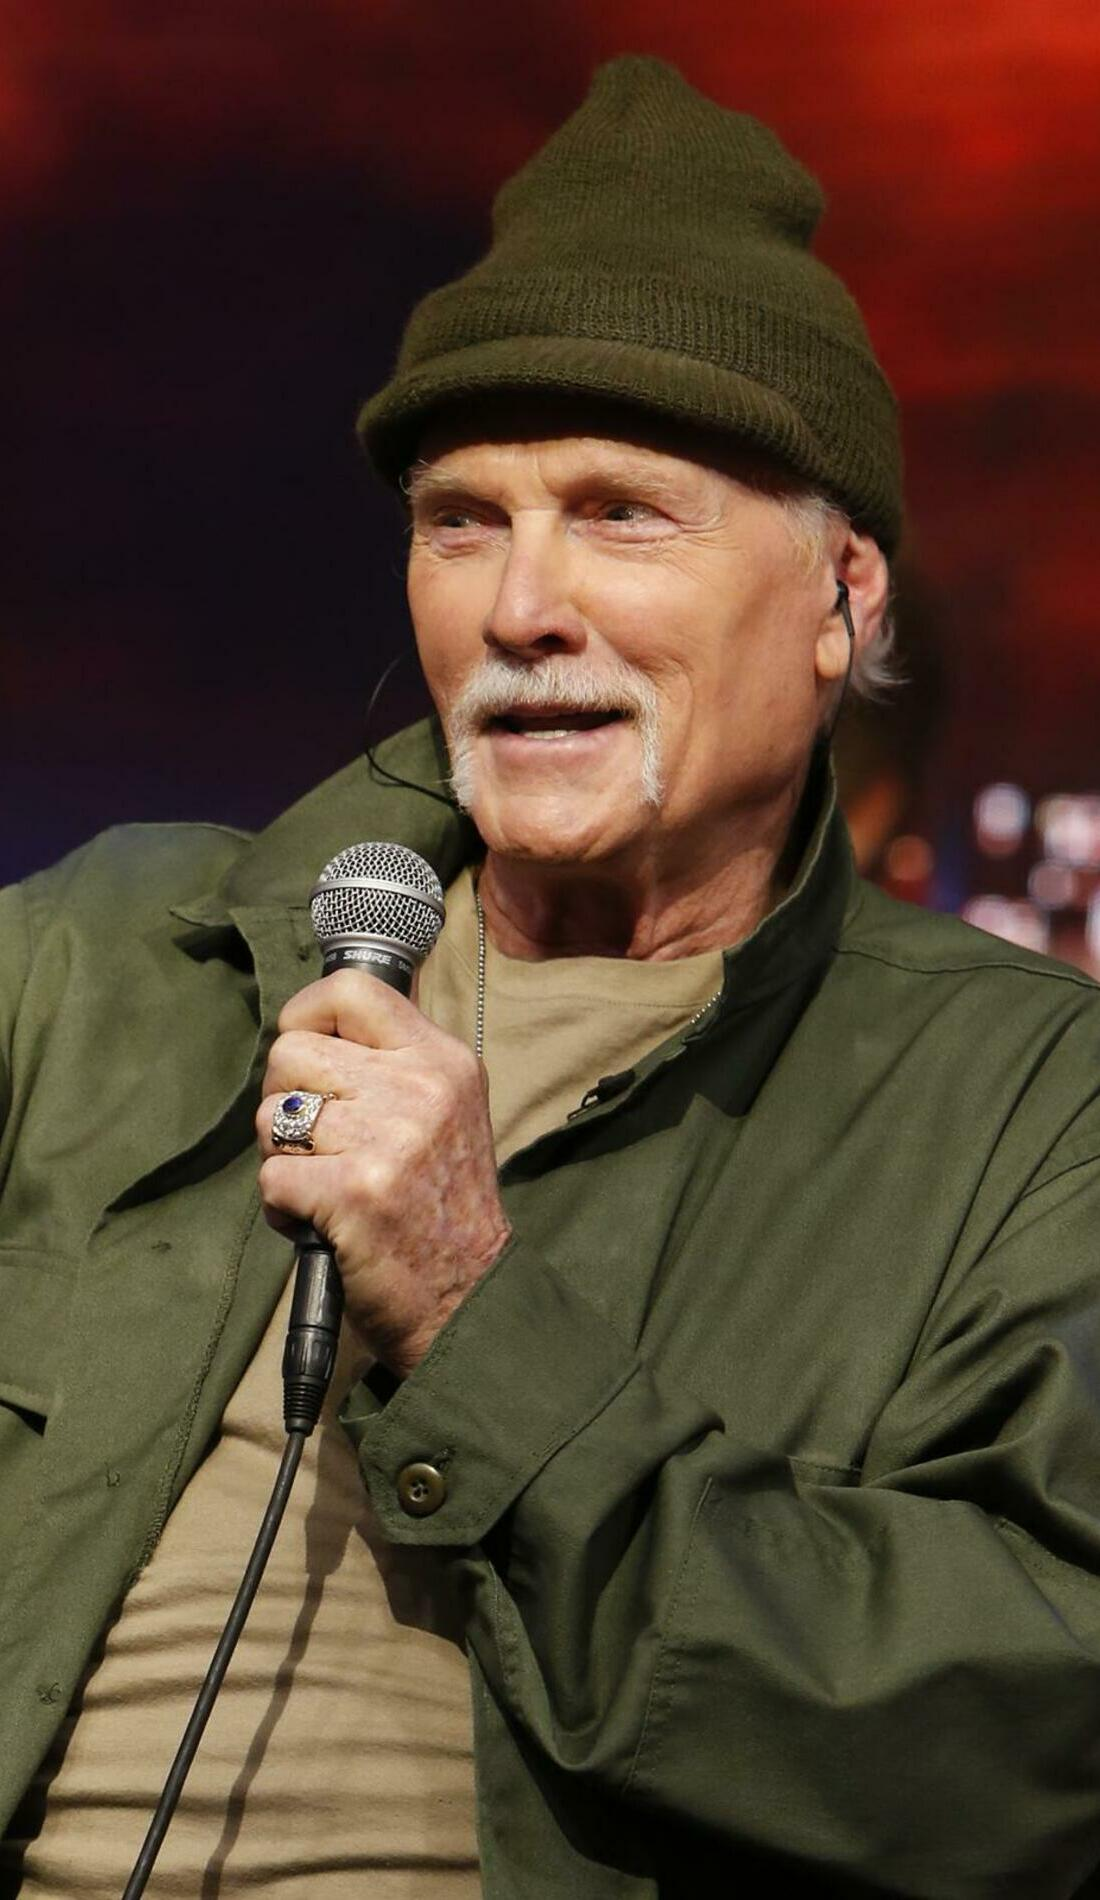 A Mike Love live event